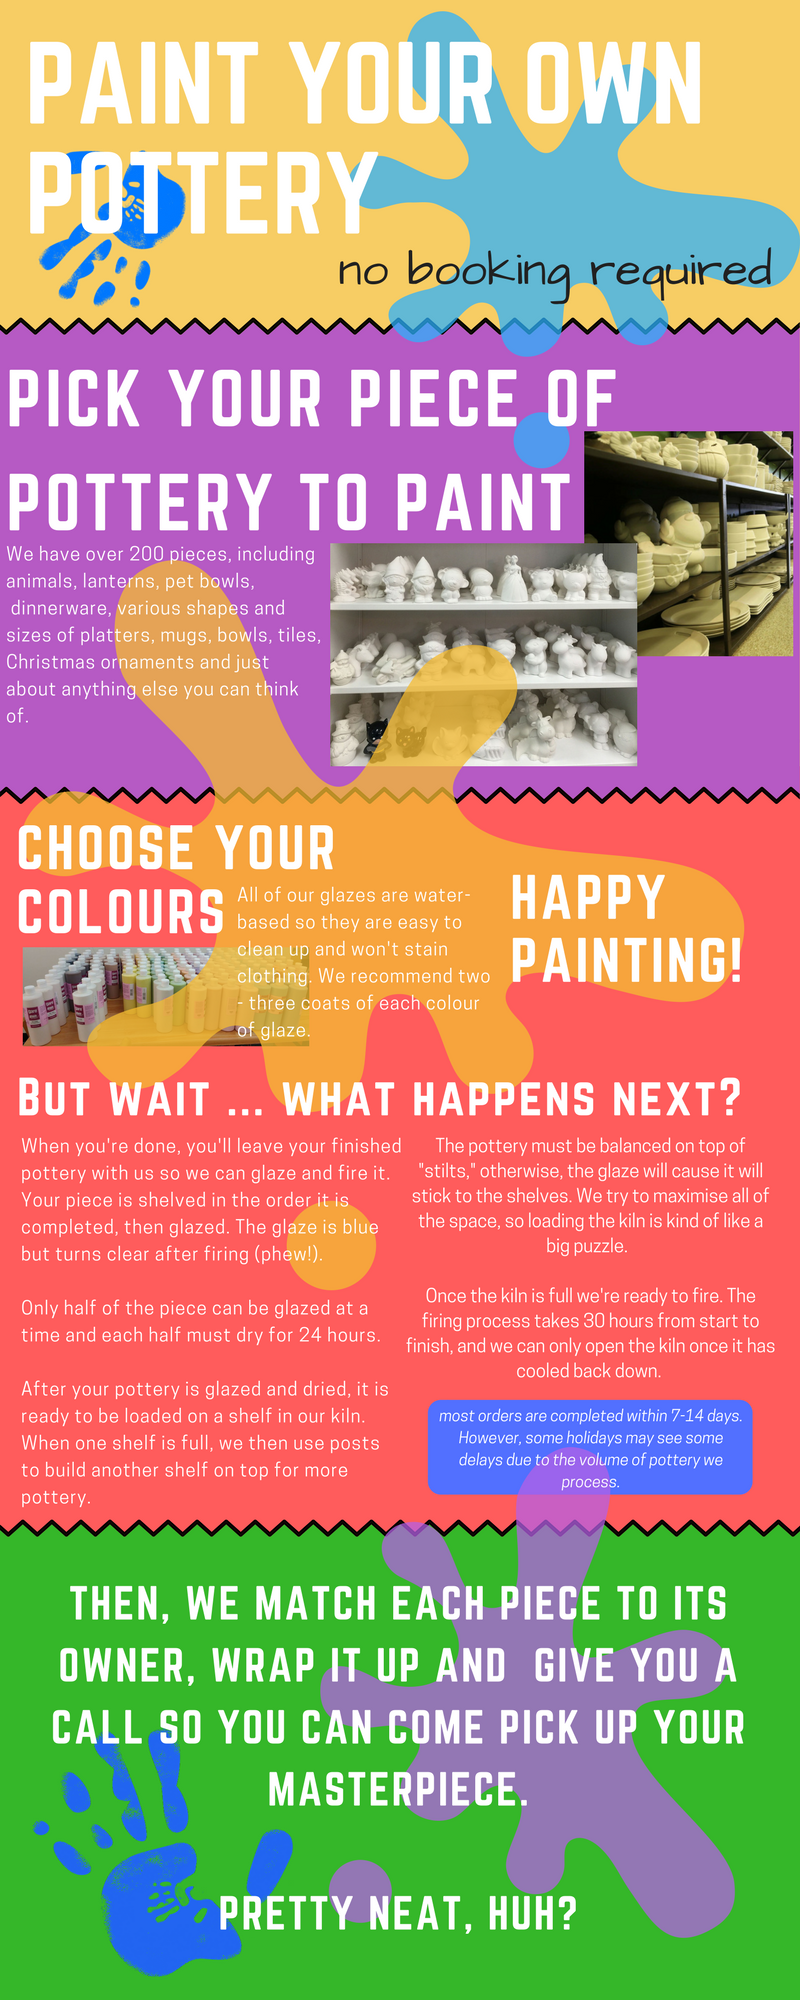 Paint Your Own Pottery Guernsey